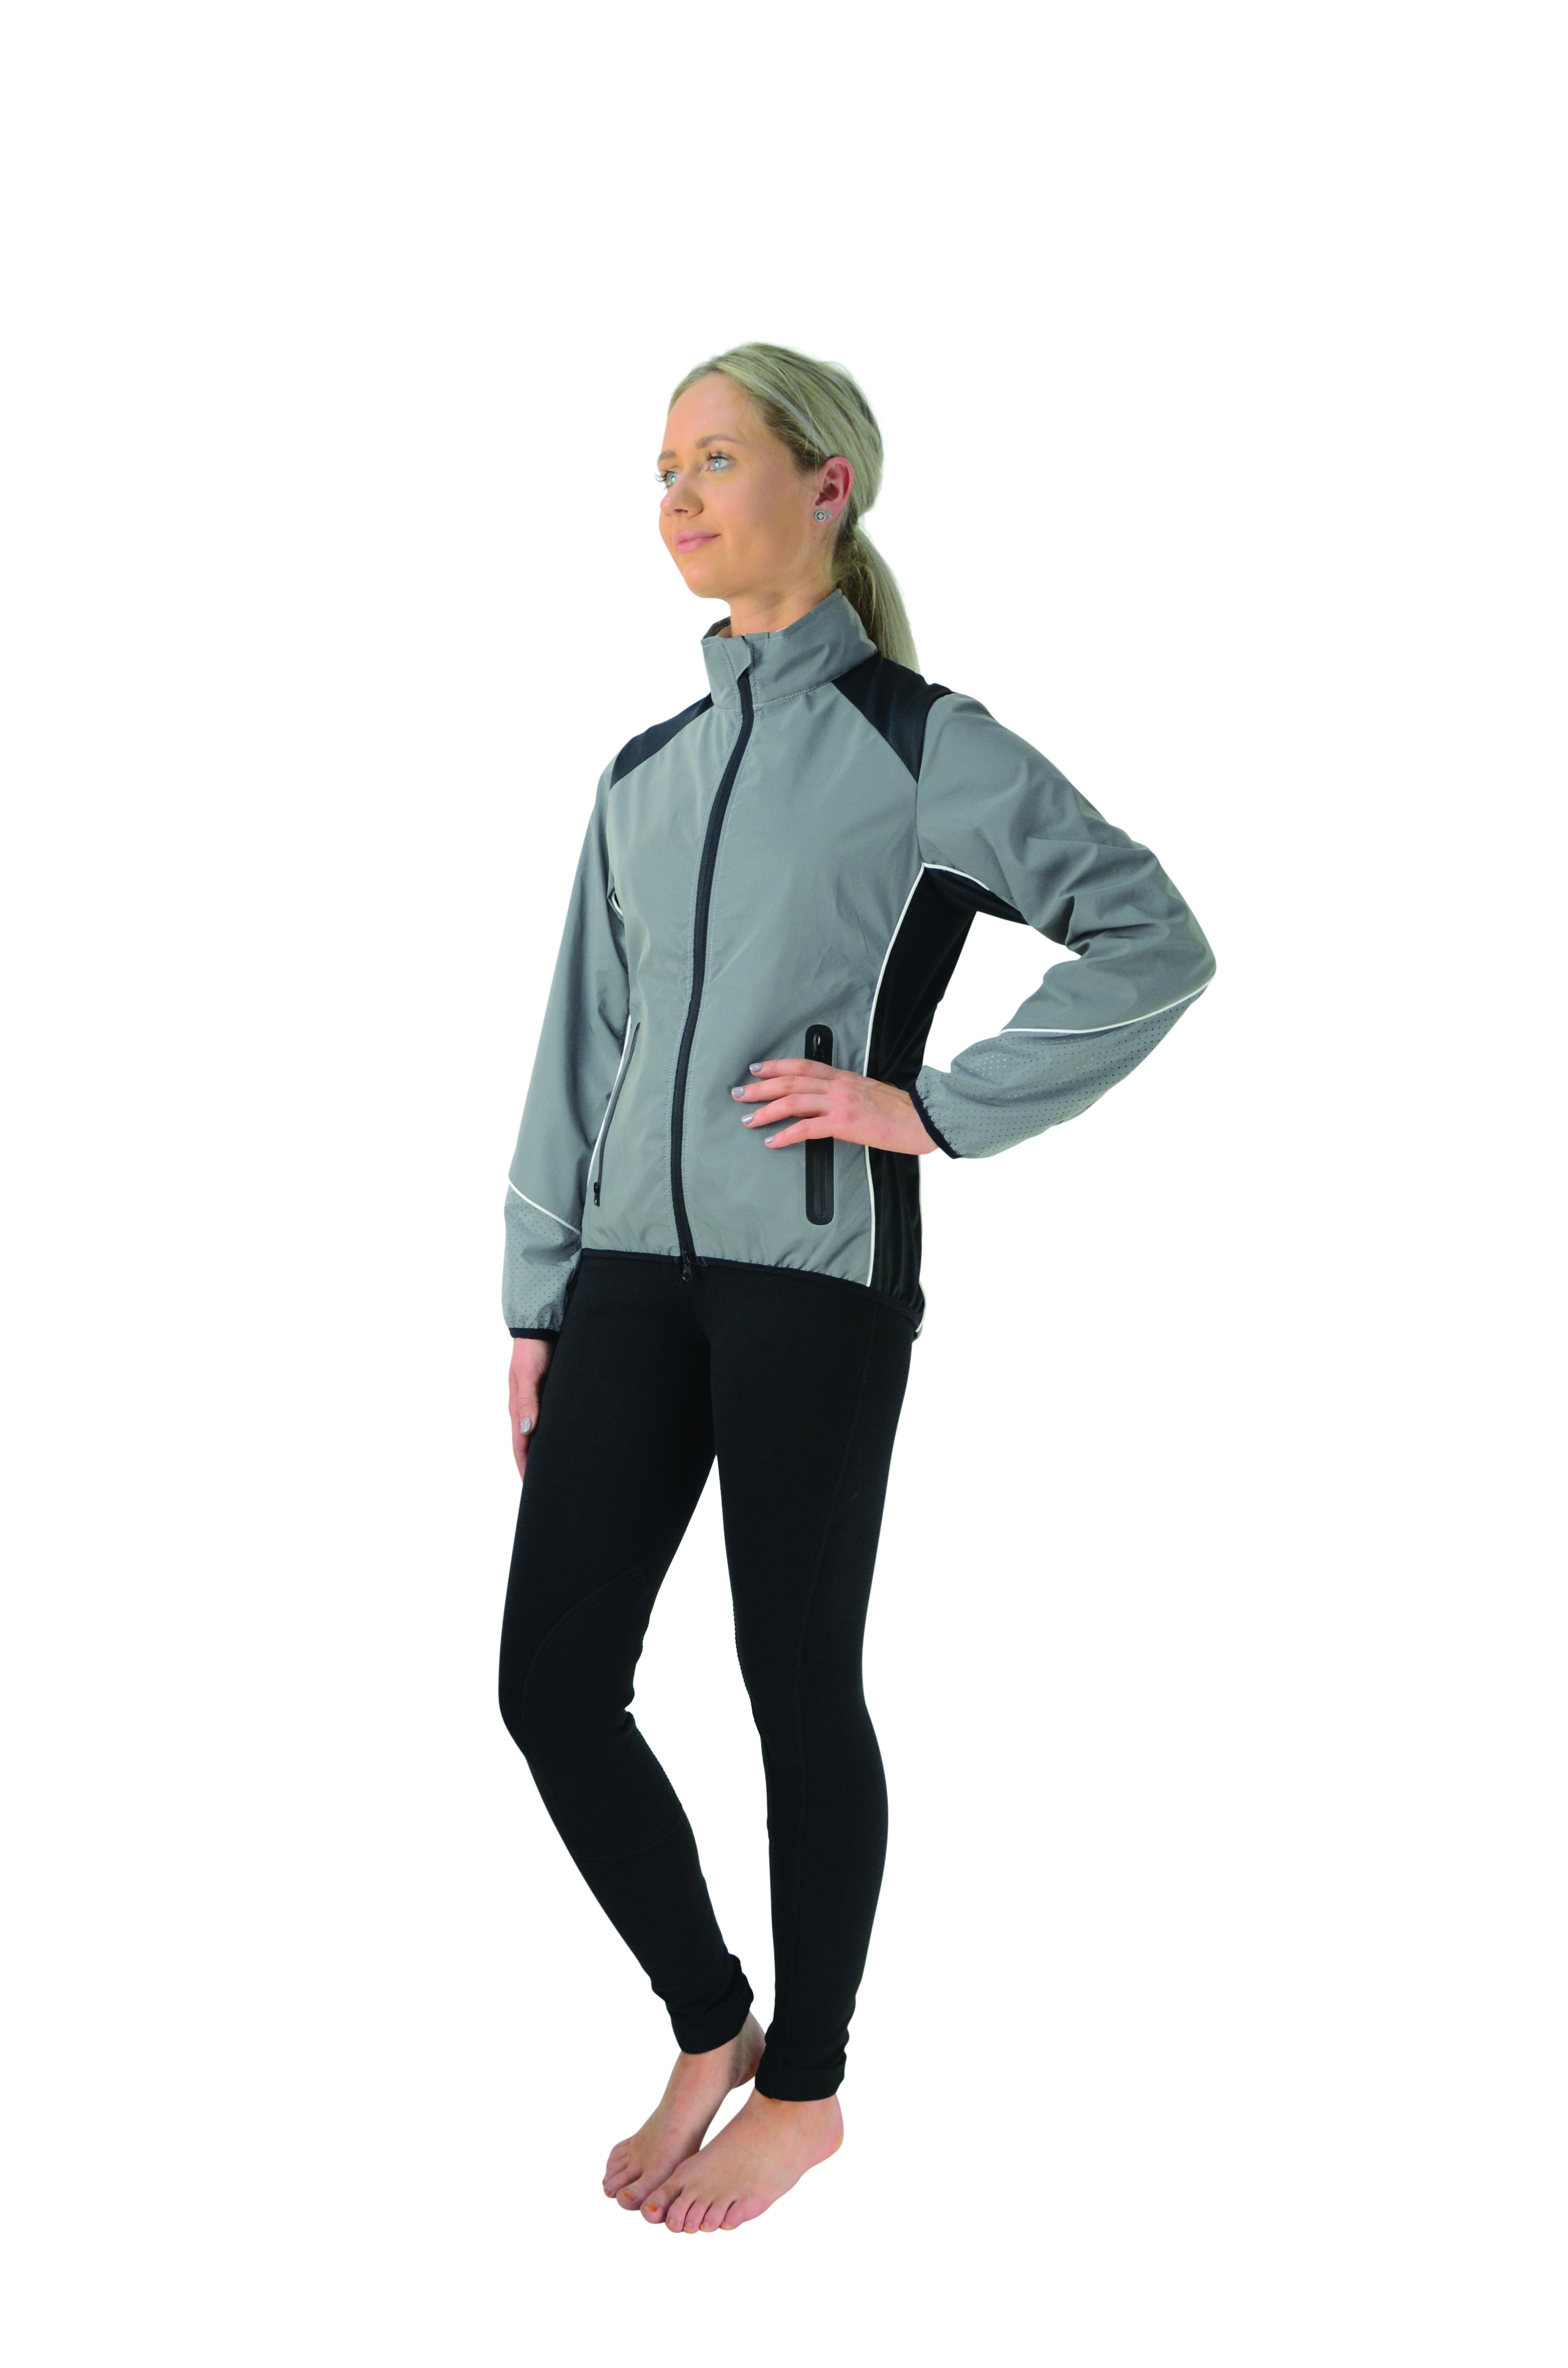 HyViz Silva Mercury Reflective Jacket  - Thomas Irving's equestrian and accessories store  HyViz Silva Flash Reflective Jacket